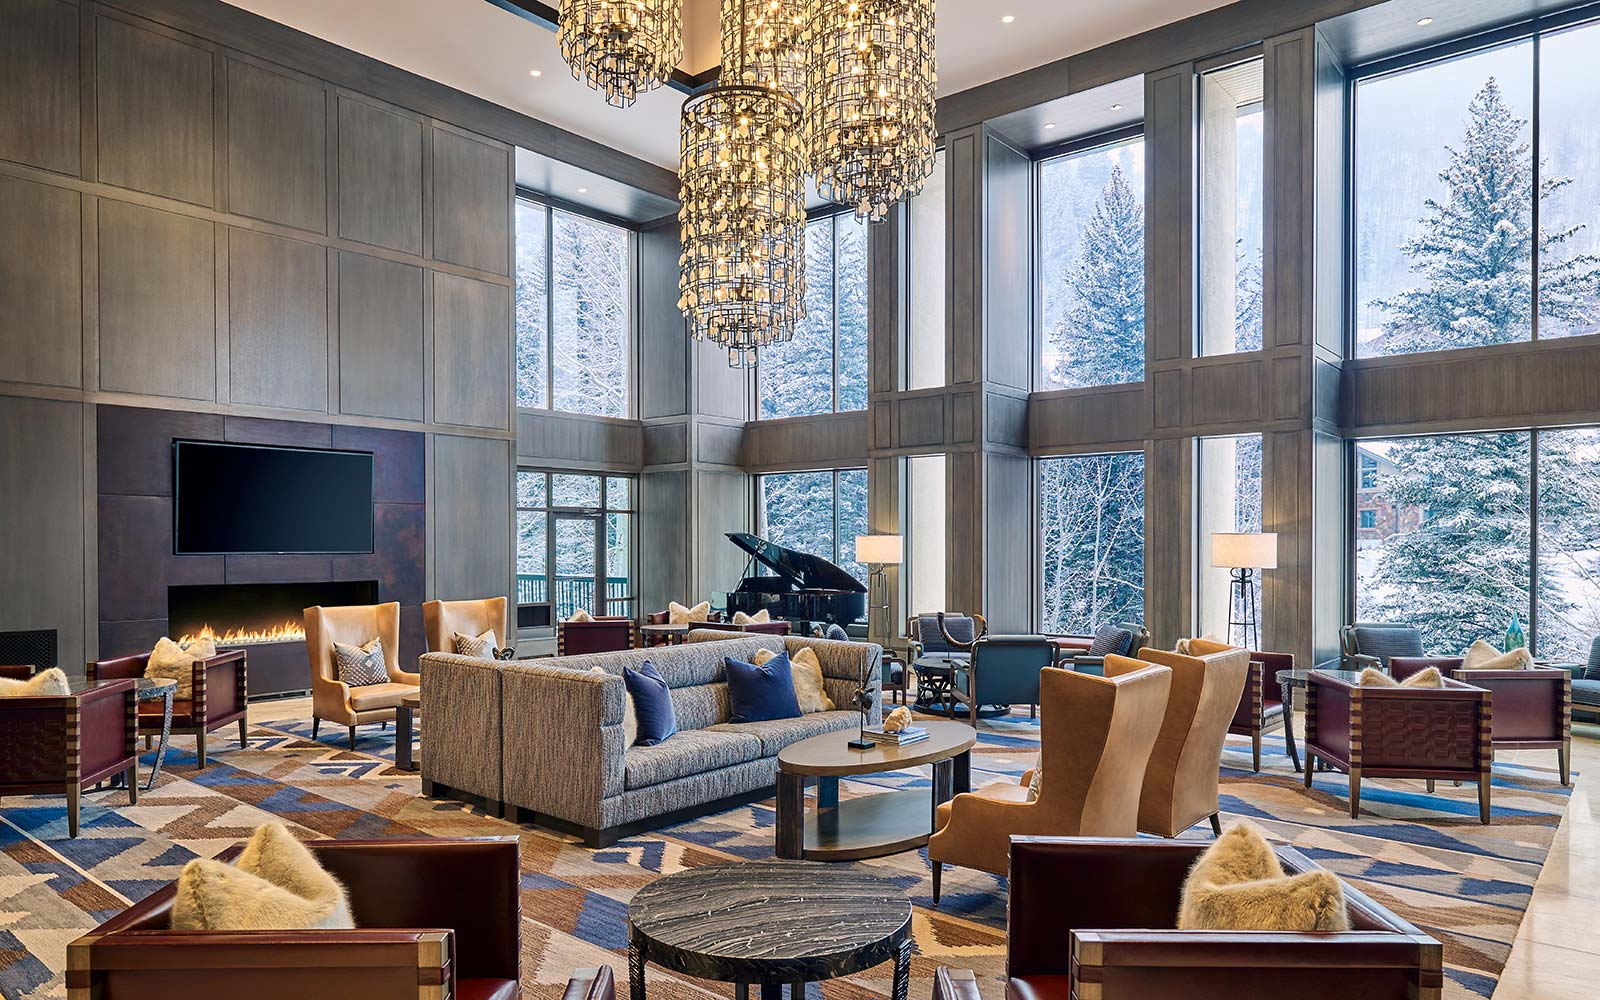 This Luxury Ski Resort in Vail Has Its Own S'mores Butler